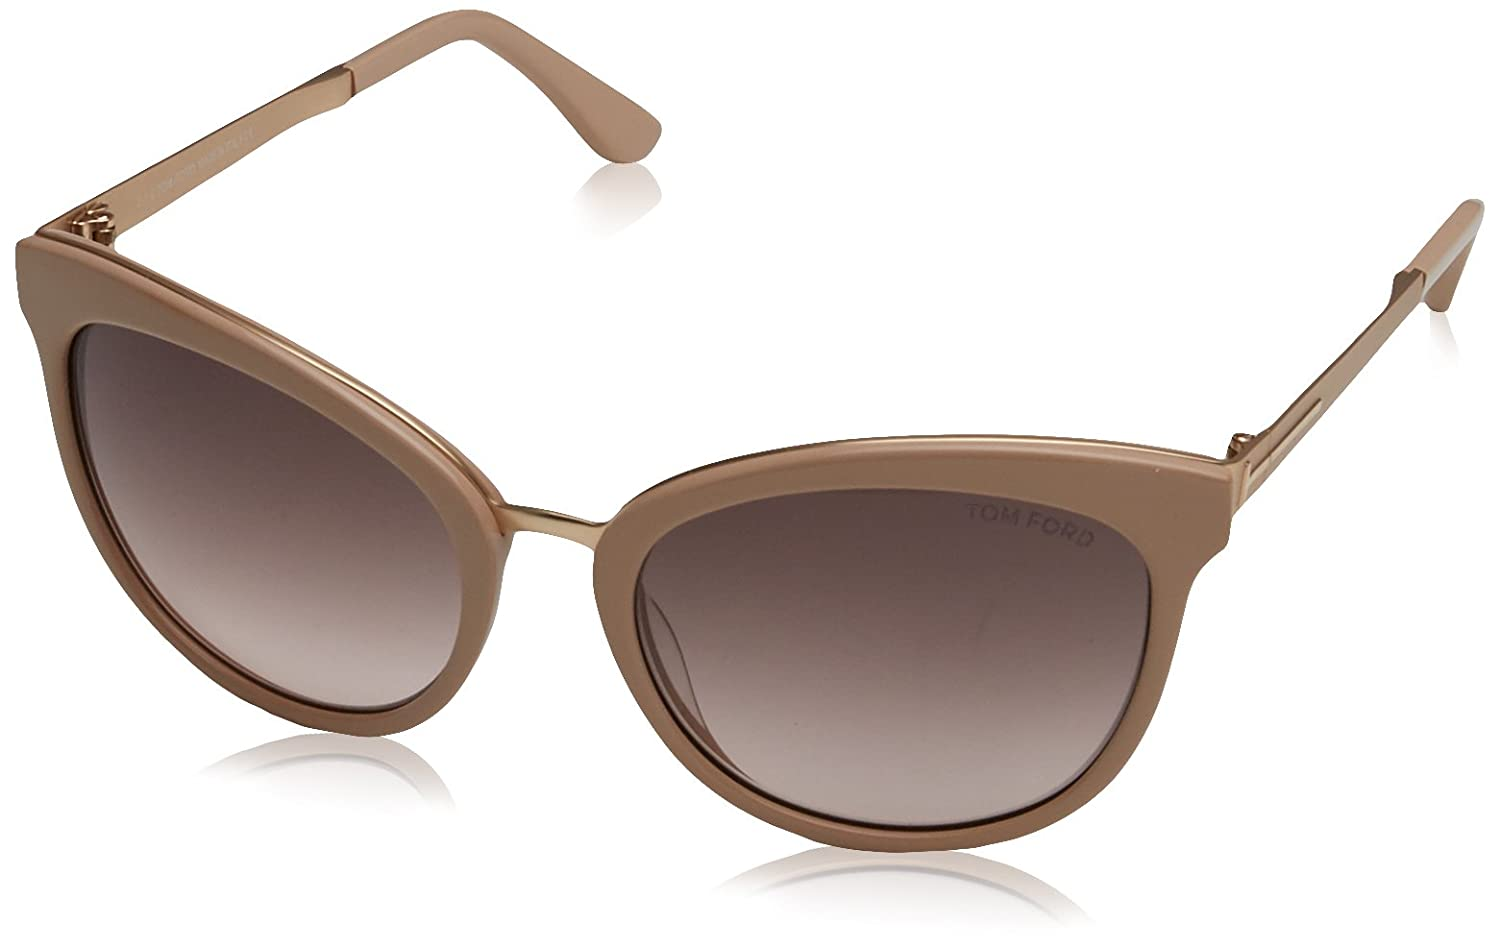 b2ee3693d0 Amazon.com  Tom Ford FT0461 74F 56mm Sunglasses - Size  56--19--130  Tom  Ford  Clothing